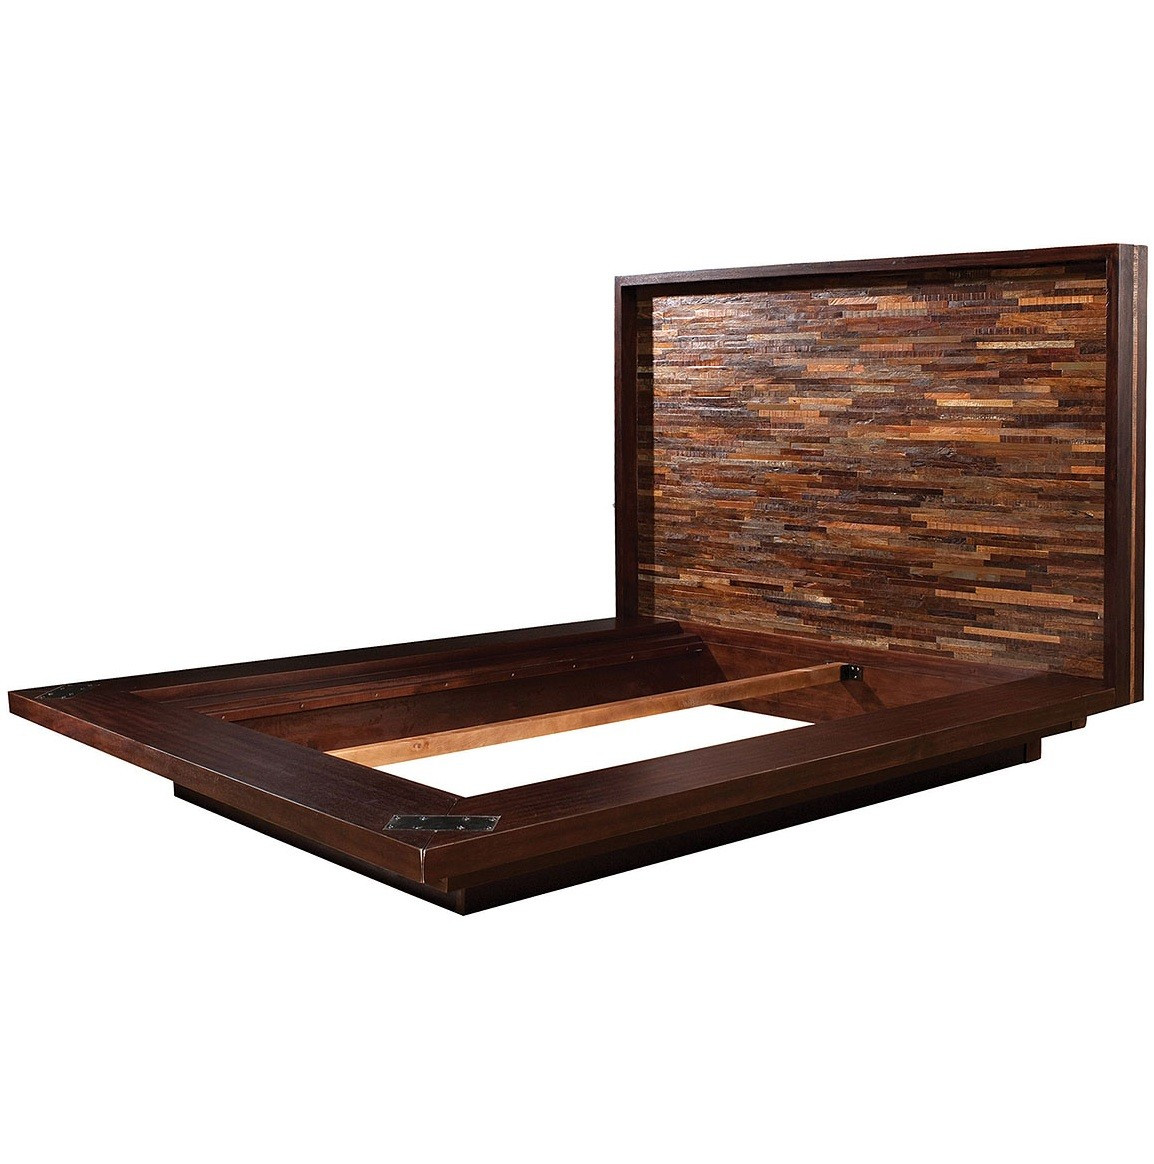 Reclaimed Wood Rustic Devon King Platform Bed Frame | Zin Home